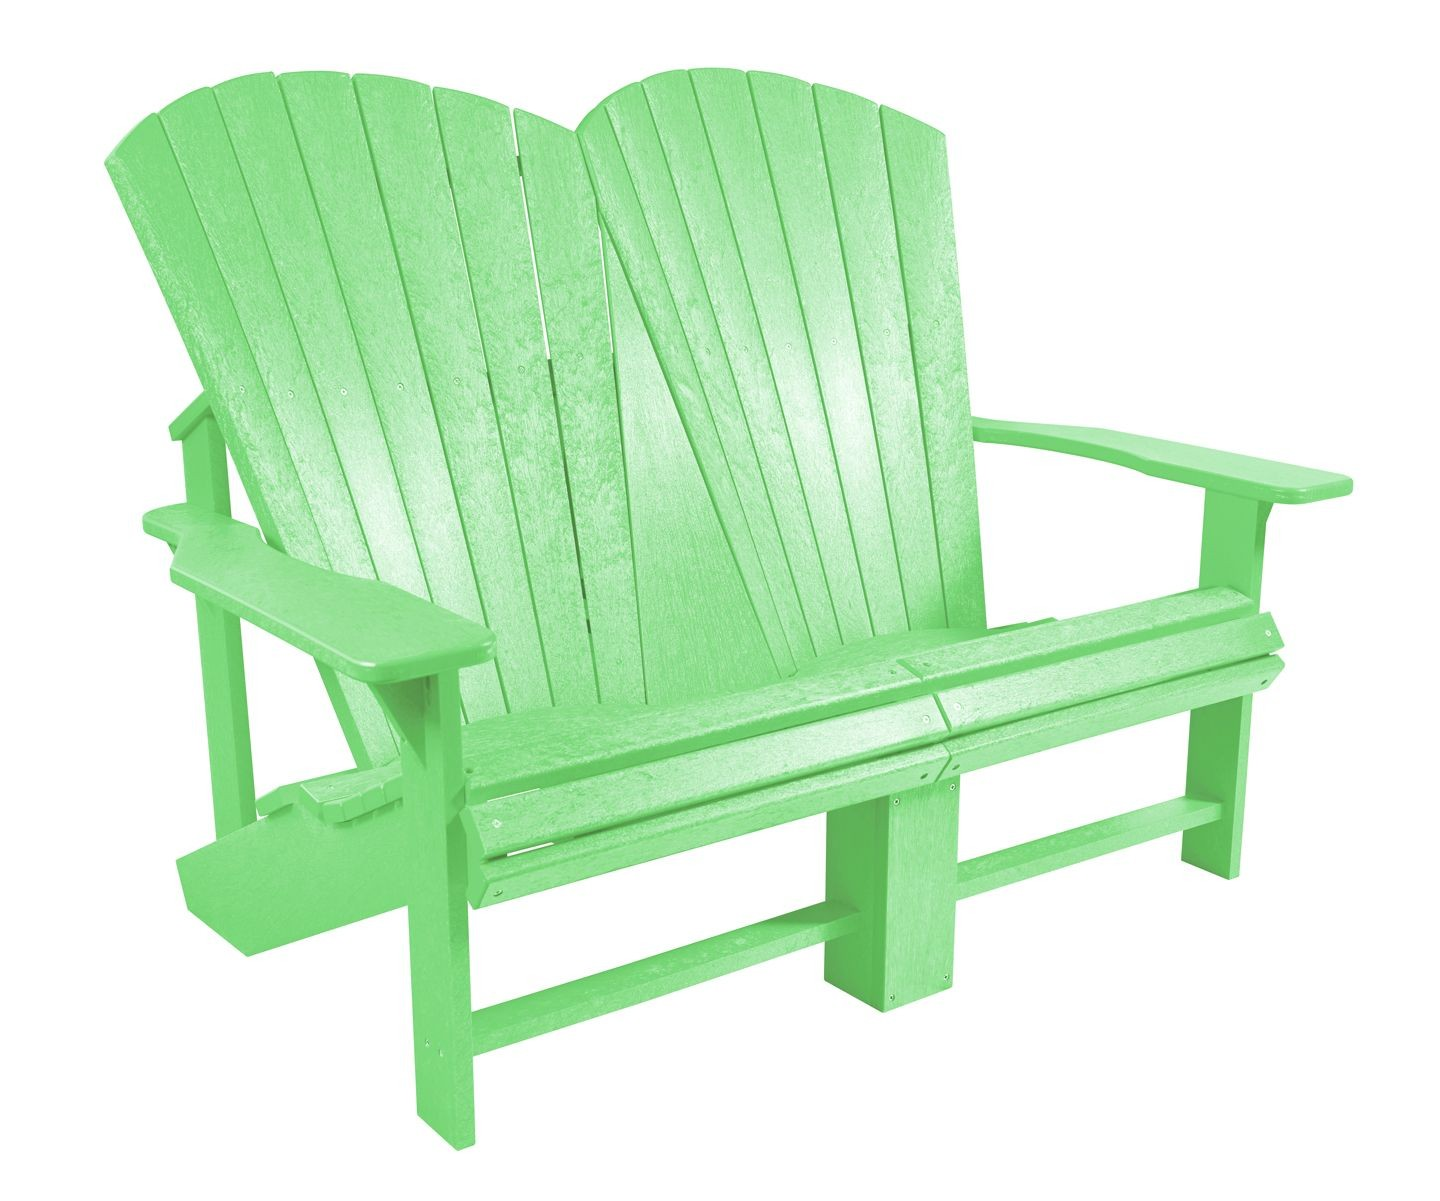 Generations Lime Green Addy Loveseat From Cr Plastic B06 15 Coleman Furniture